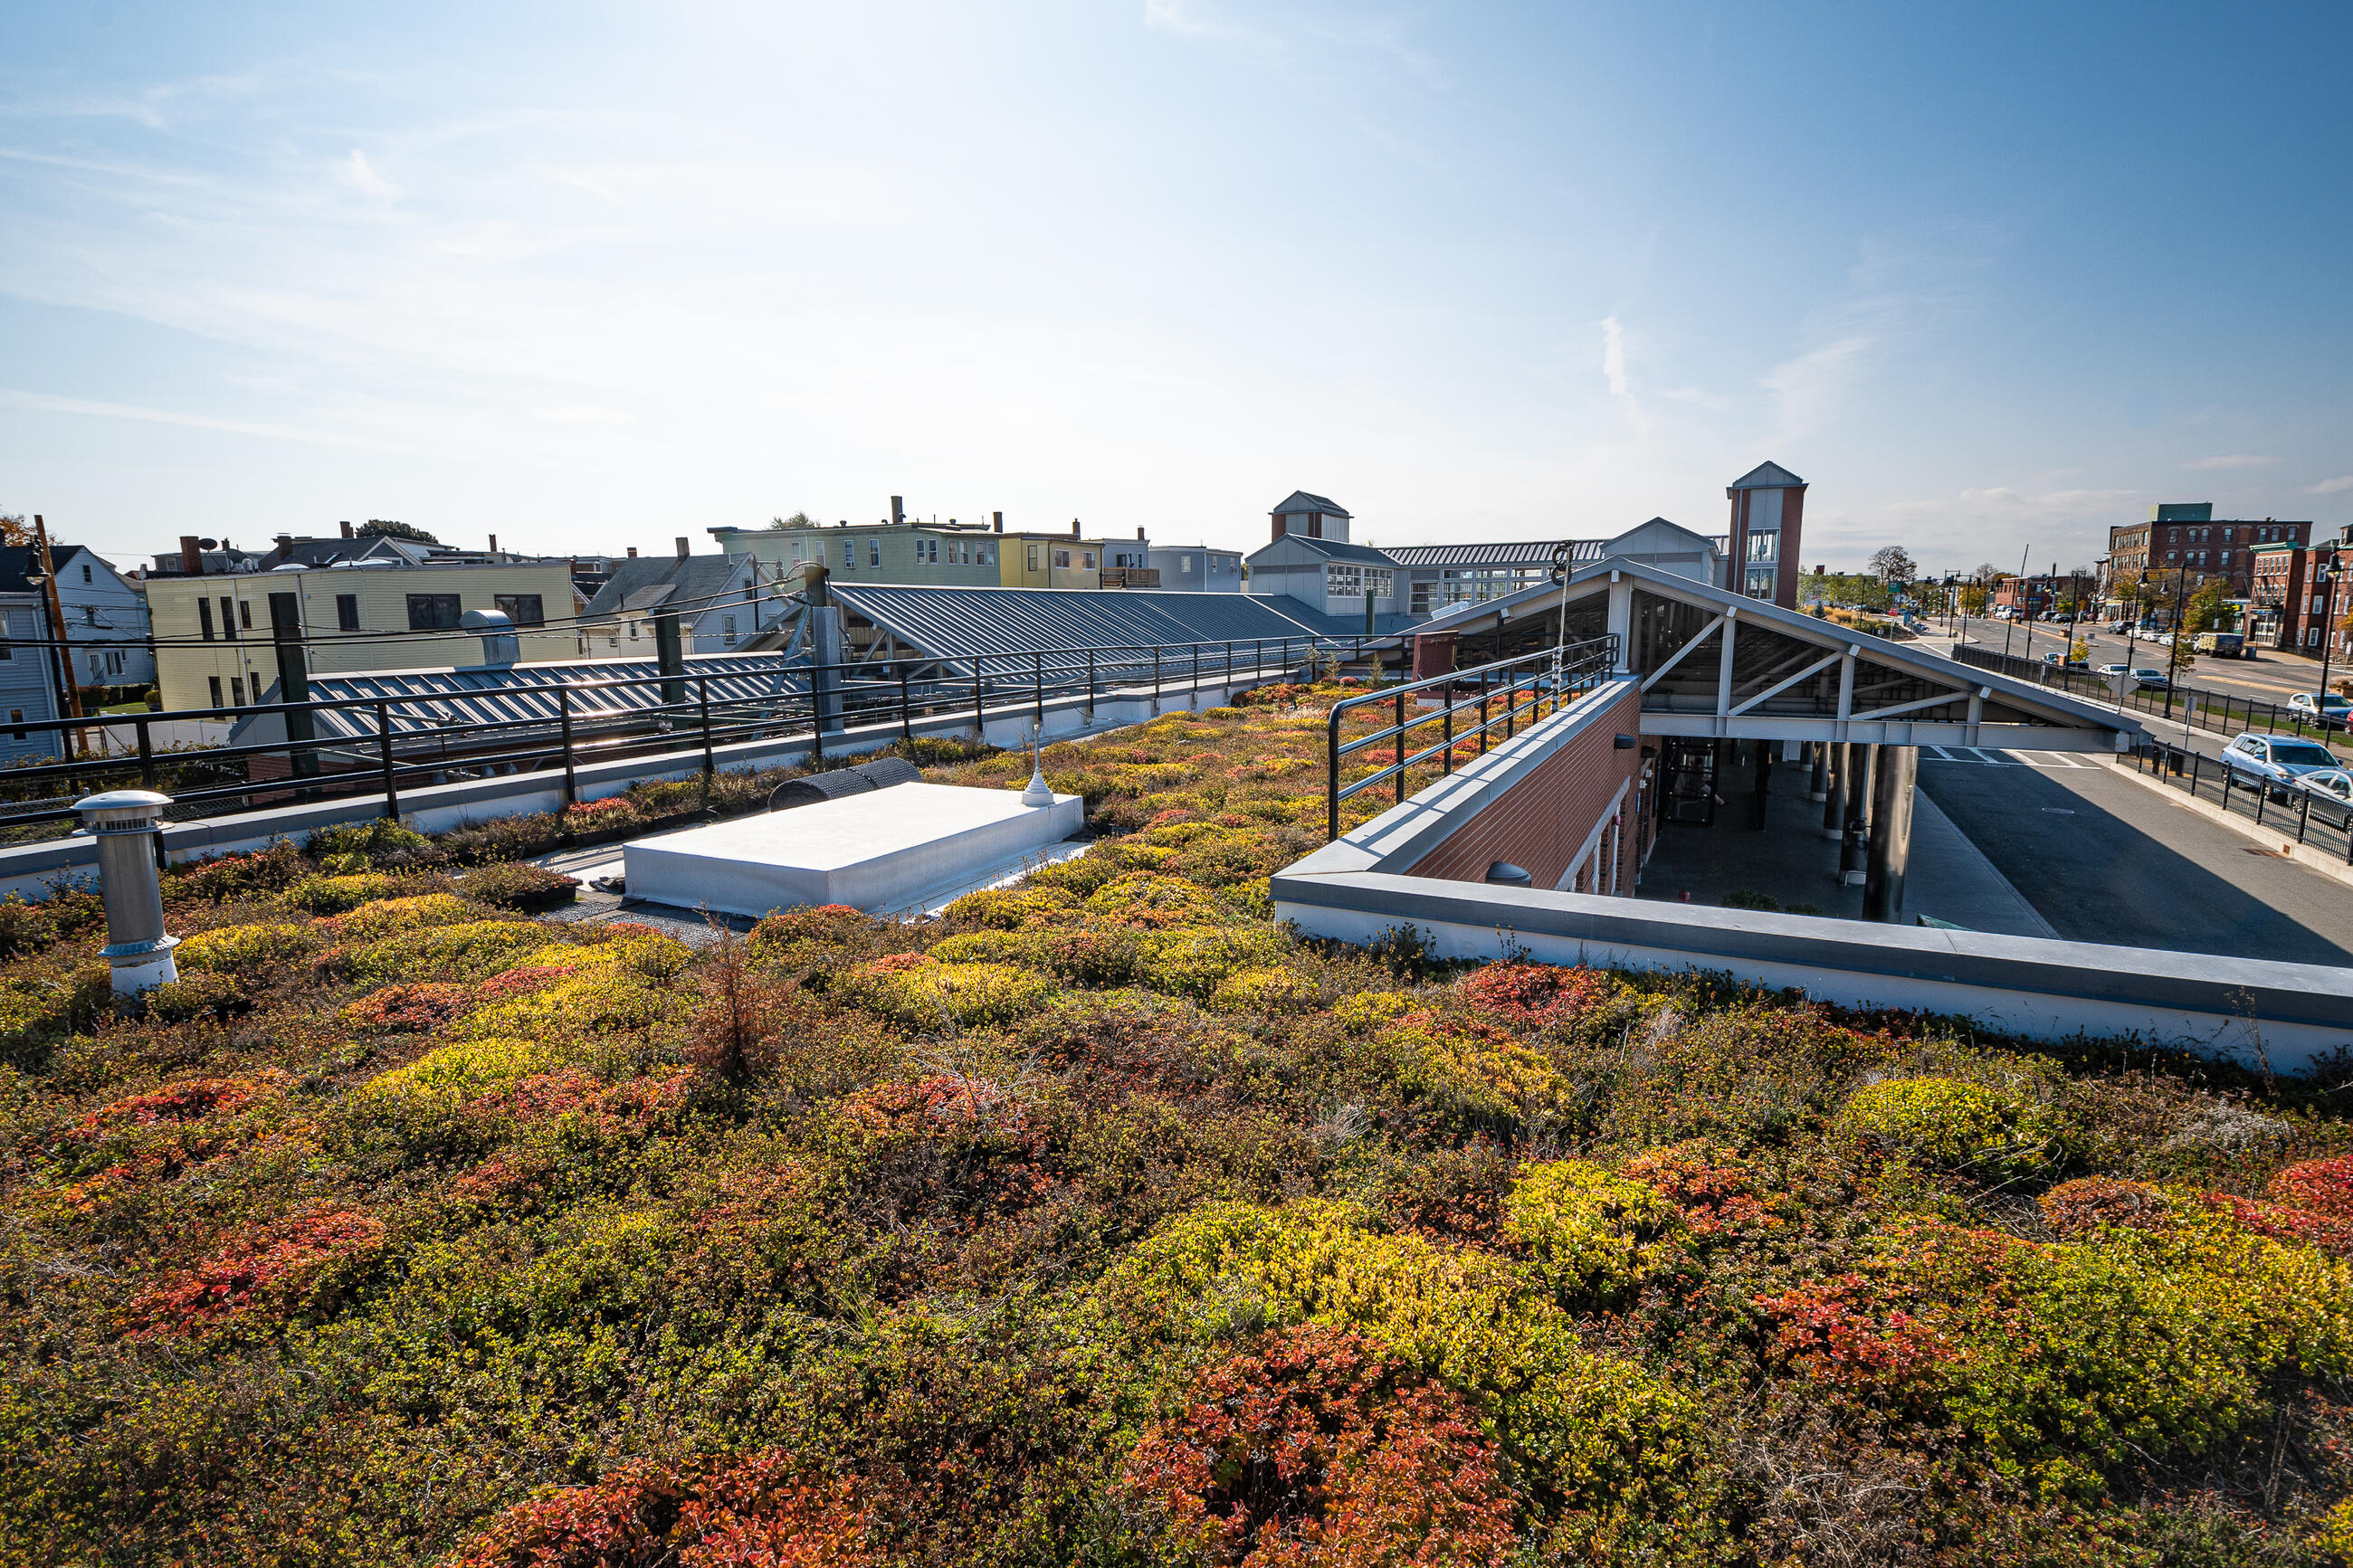 Green roof on Orient Heights Station reduces the amount of stormwater runoff entering the municipal storm system